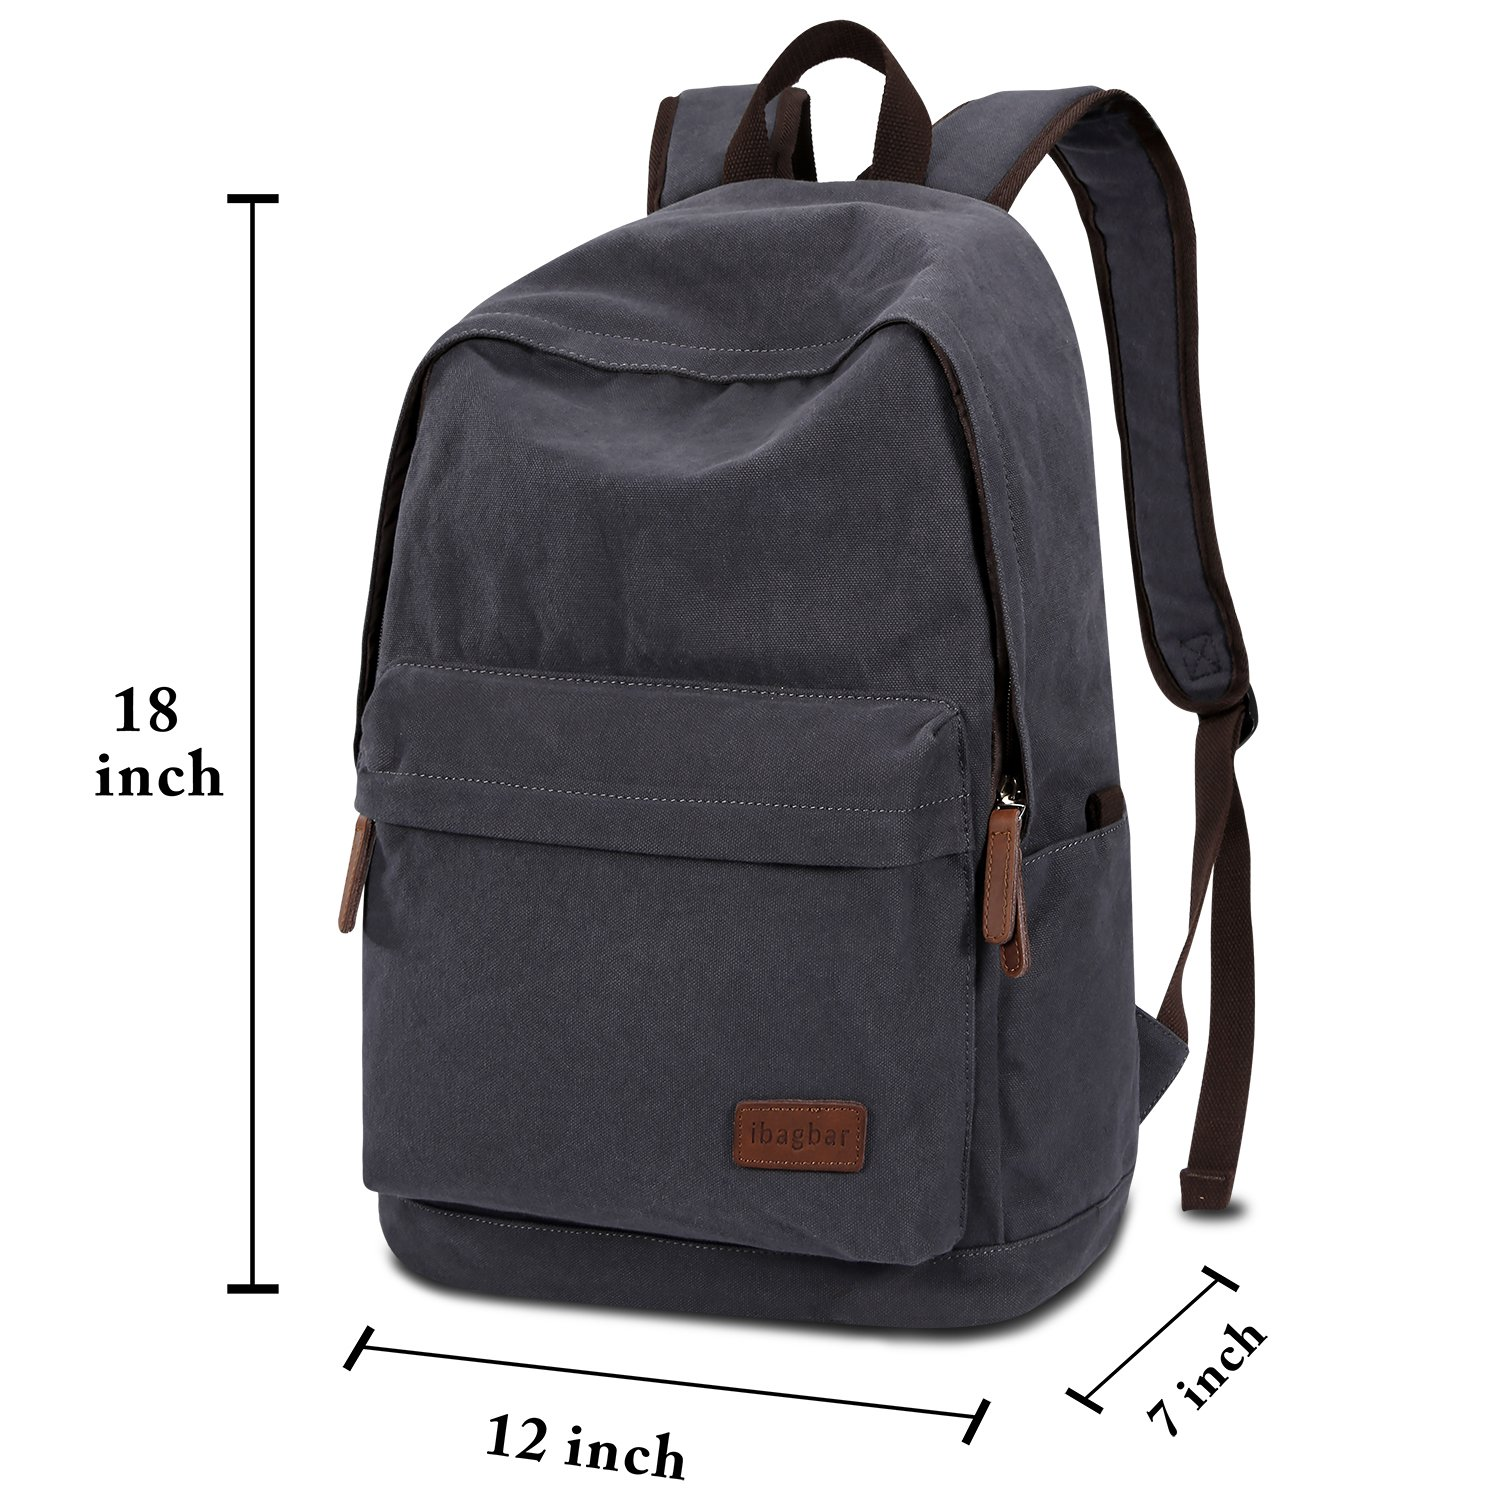 ibagbar Classic Lightweight Canvas Backpack Daypacks Dark Gray